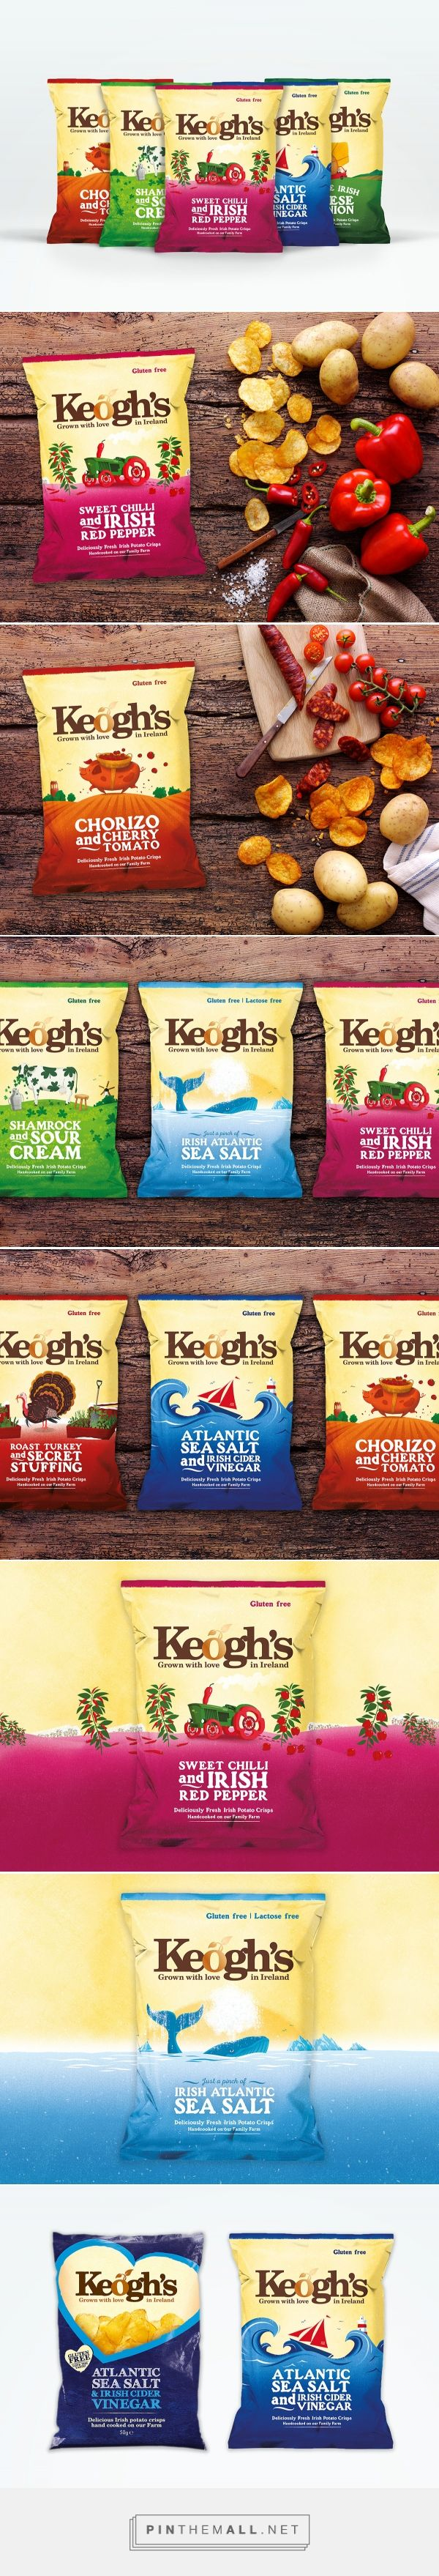 Before & After - Keogh's Premium Crisps packaging design by Brandpoint - http://www.packagingoftheworld.com/2017/10/keoghs-premium-crisps.html